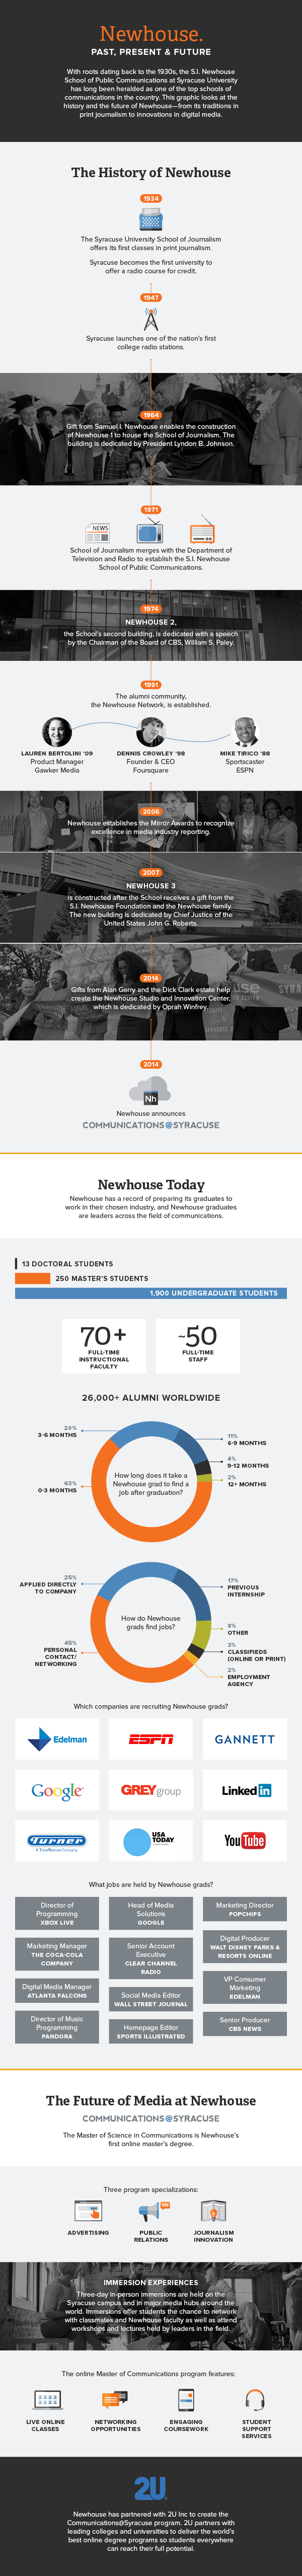 Infographic showing the history of the Newhouse School of Public Communications.